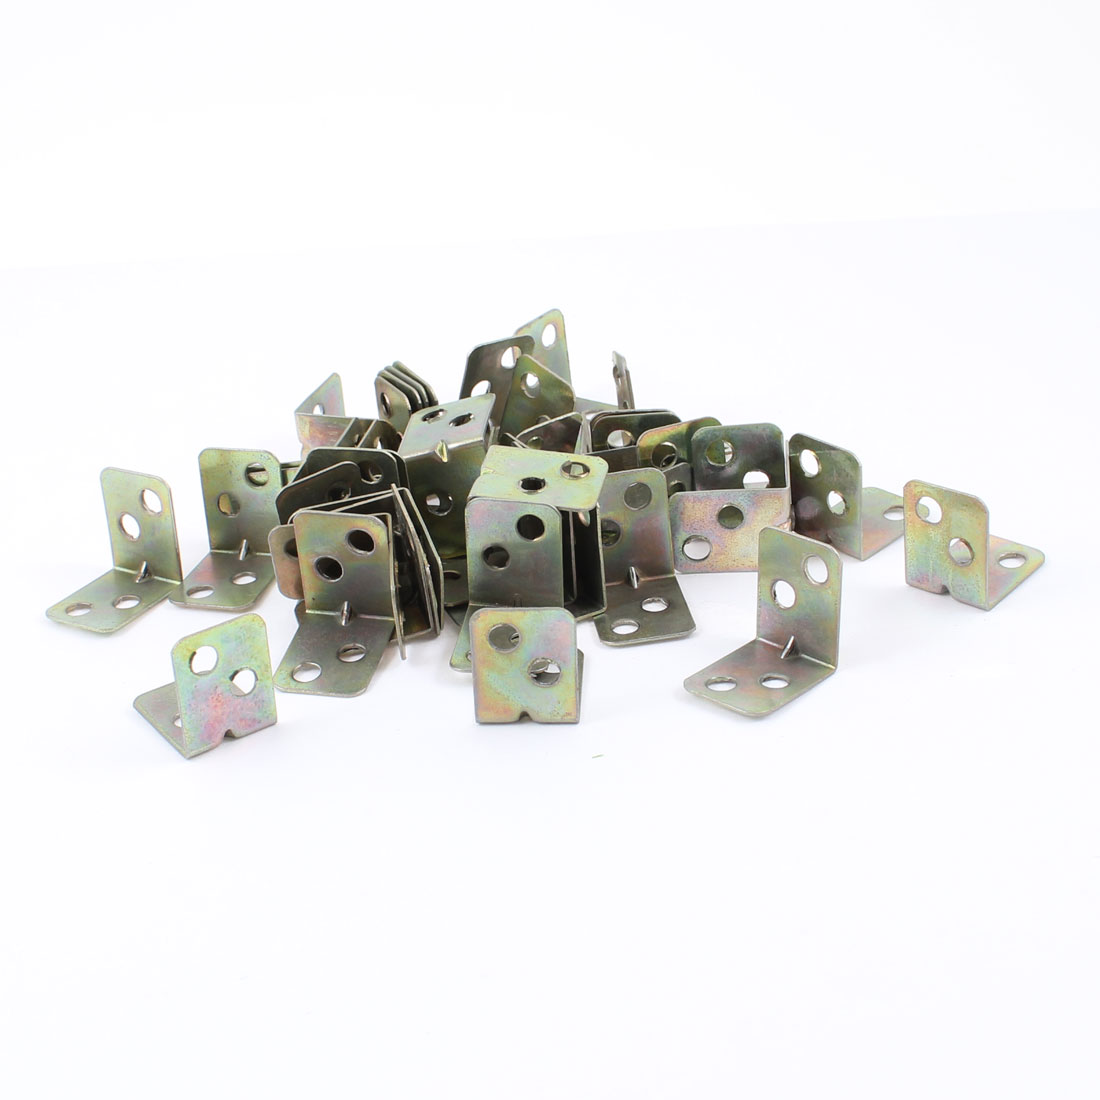 Shelf Door 15mm x 20mm x 20mm 90 Degree 4 Holes Corner Brackets 100 Pcs